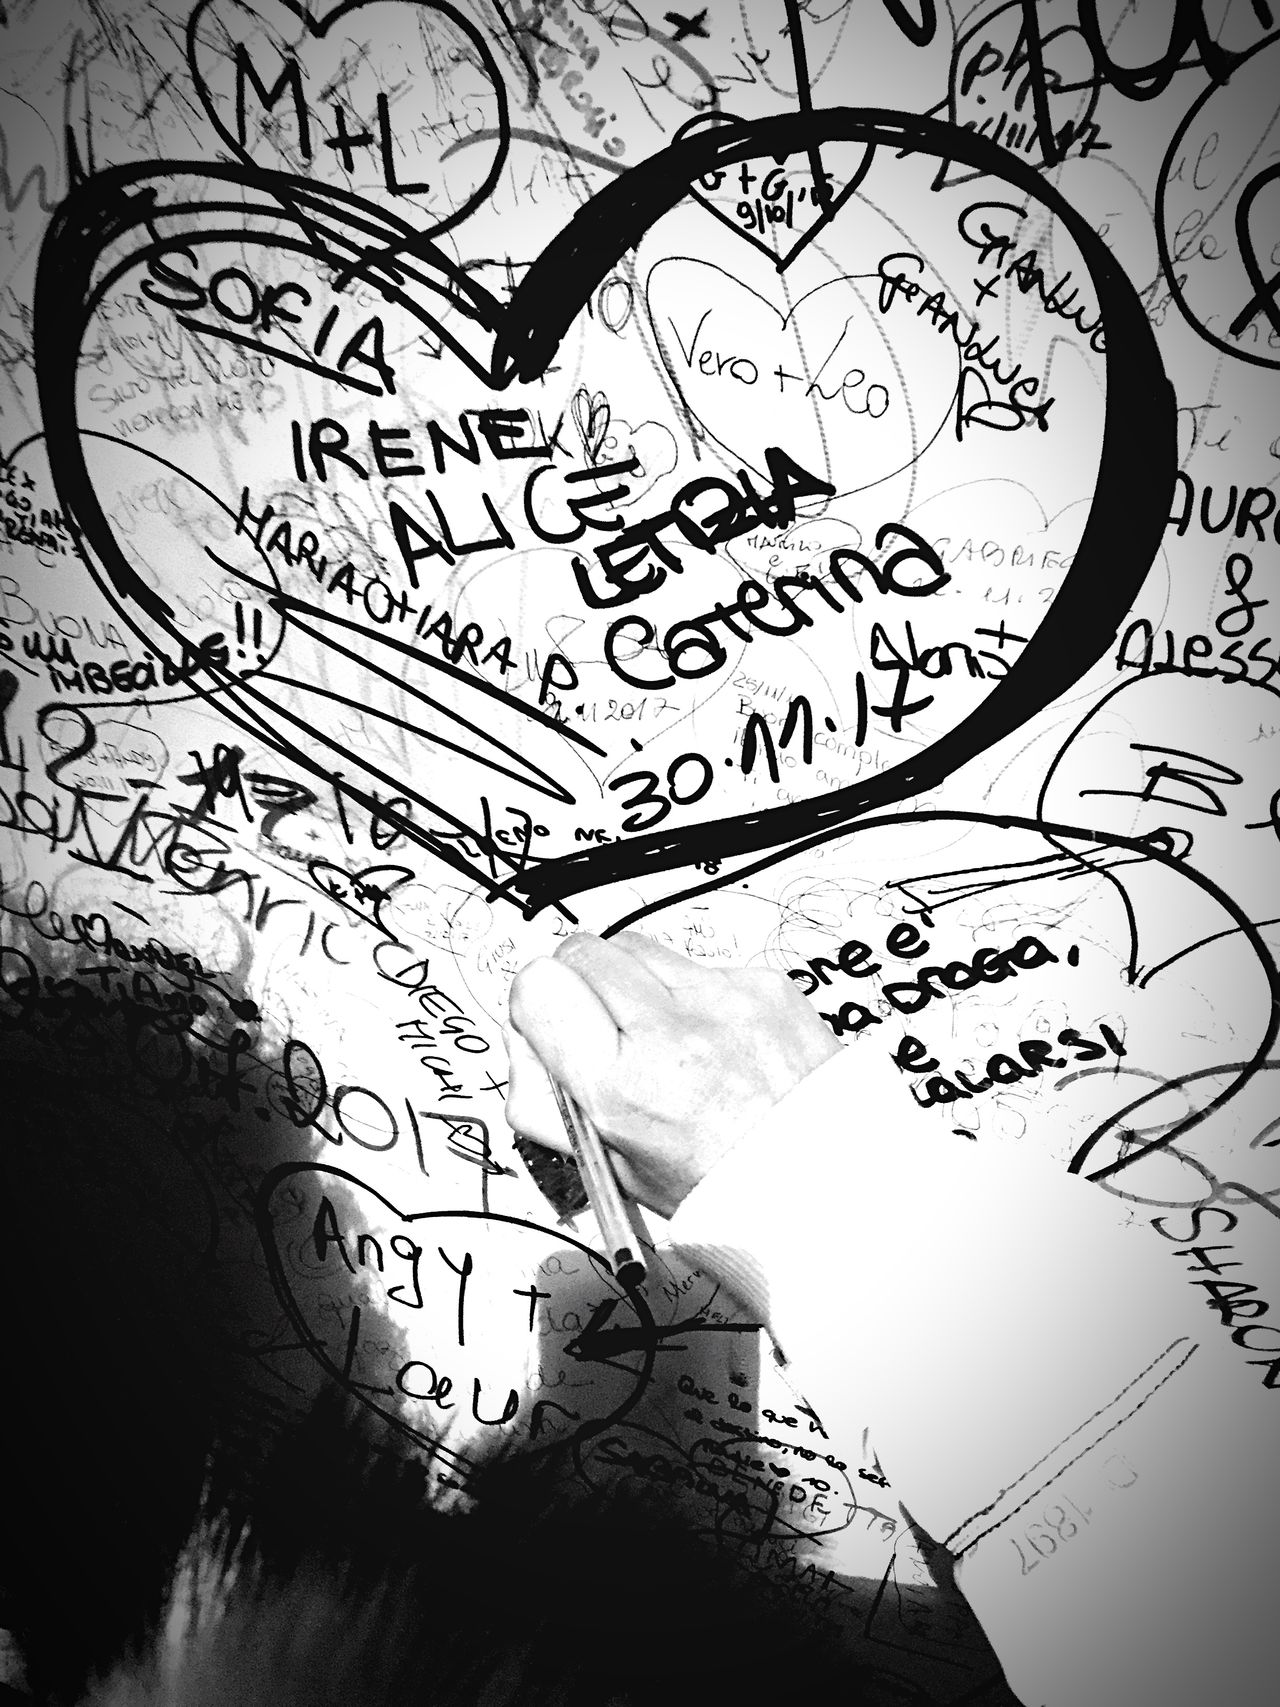 Pen Daytime Black And White Heart People Photography People And Places People Watching Handmade For You Handmade Written Write Something About You Writer Writing Writing On The Walls Message Message To The World Fromitalywithlove Wall Art Romeo And Juliet Romeo And Juliet Wall Decoration Wall Painting Wall Art Wall Sketch Low Angle View No People